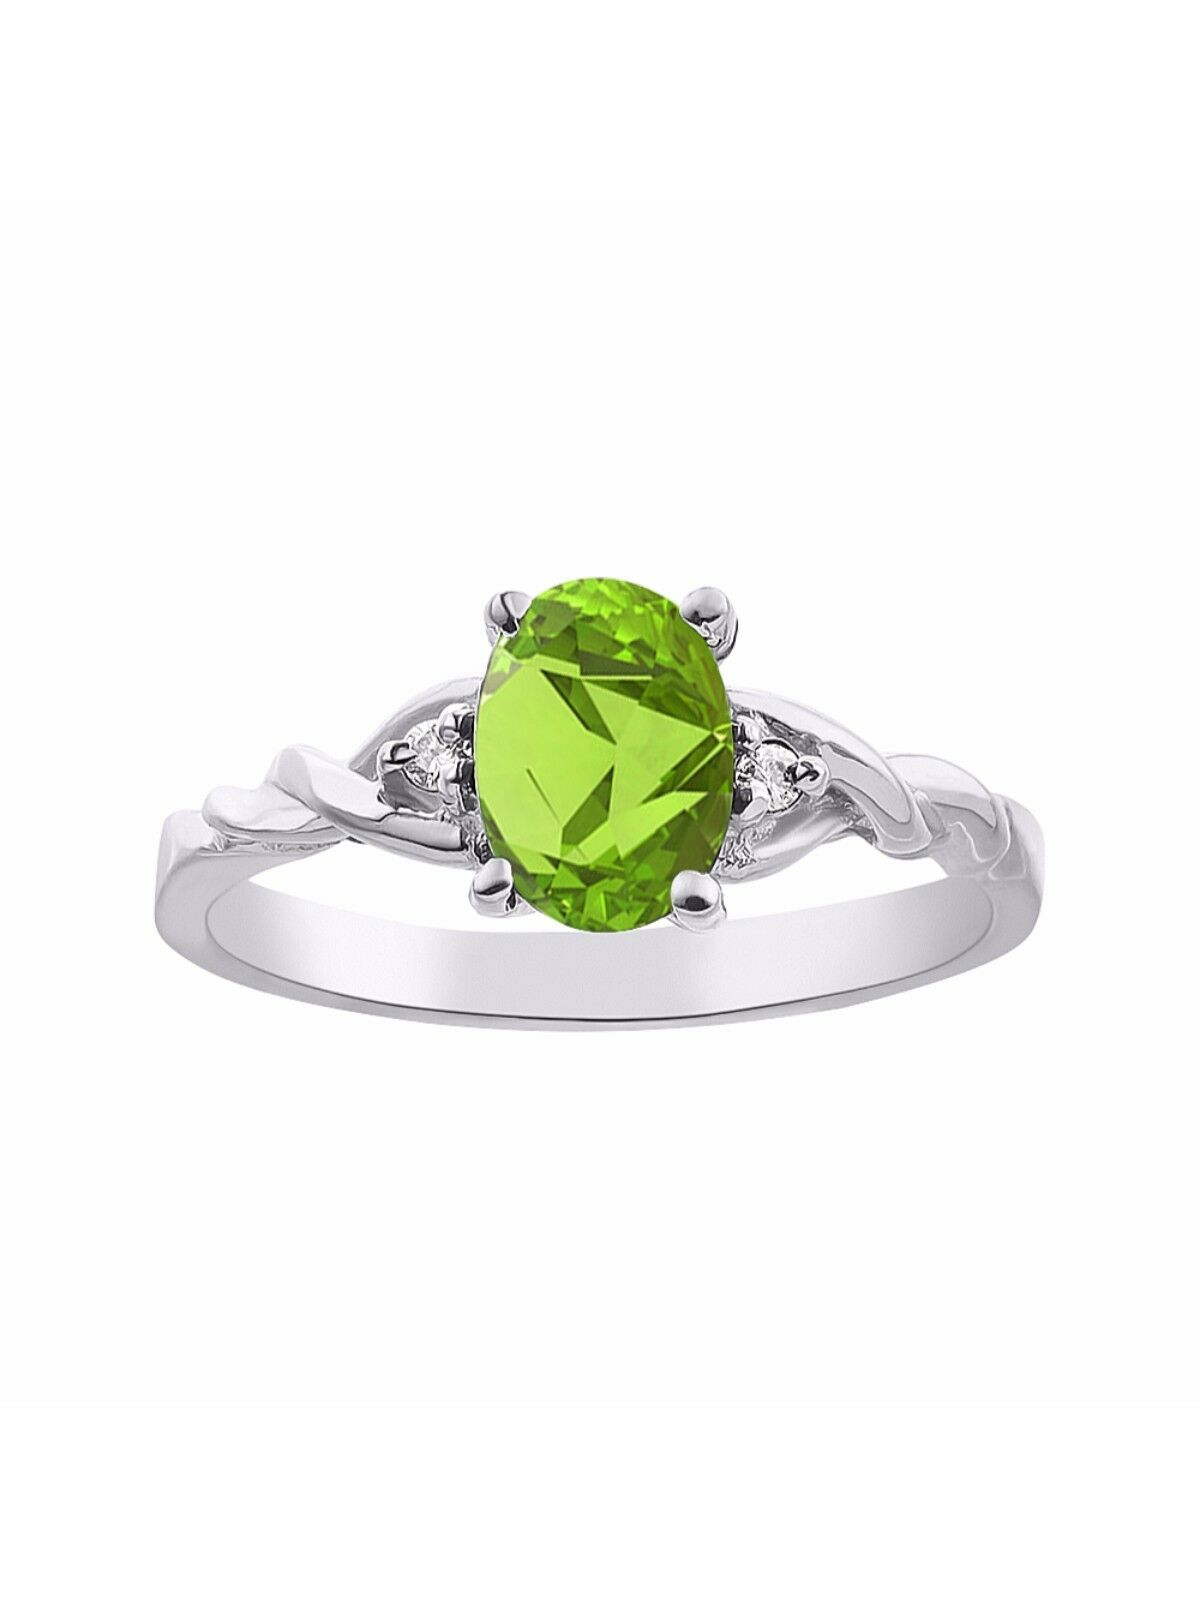 Diamond & Peridot Ring Set In 14K White gold Solitaire LR5987PEW-D